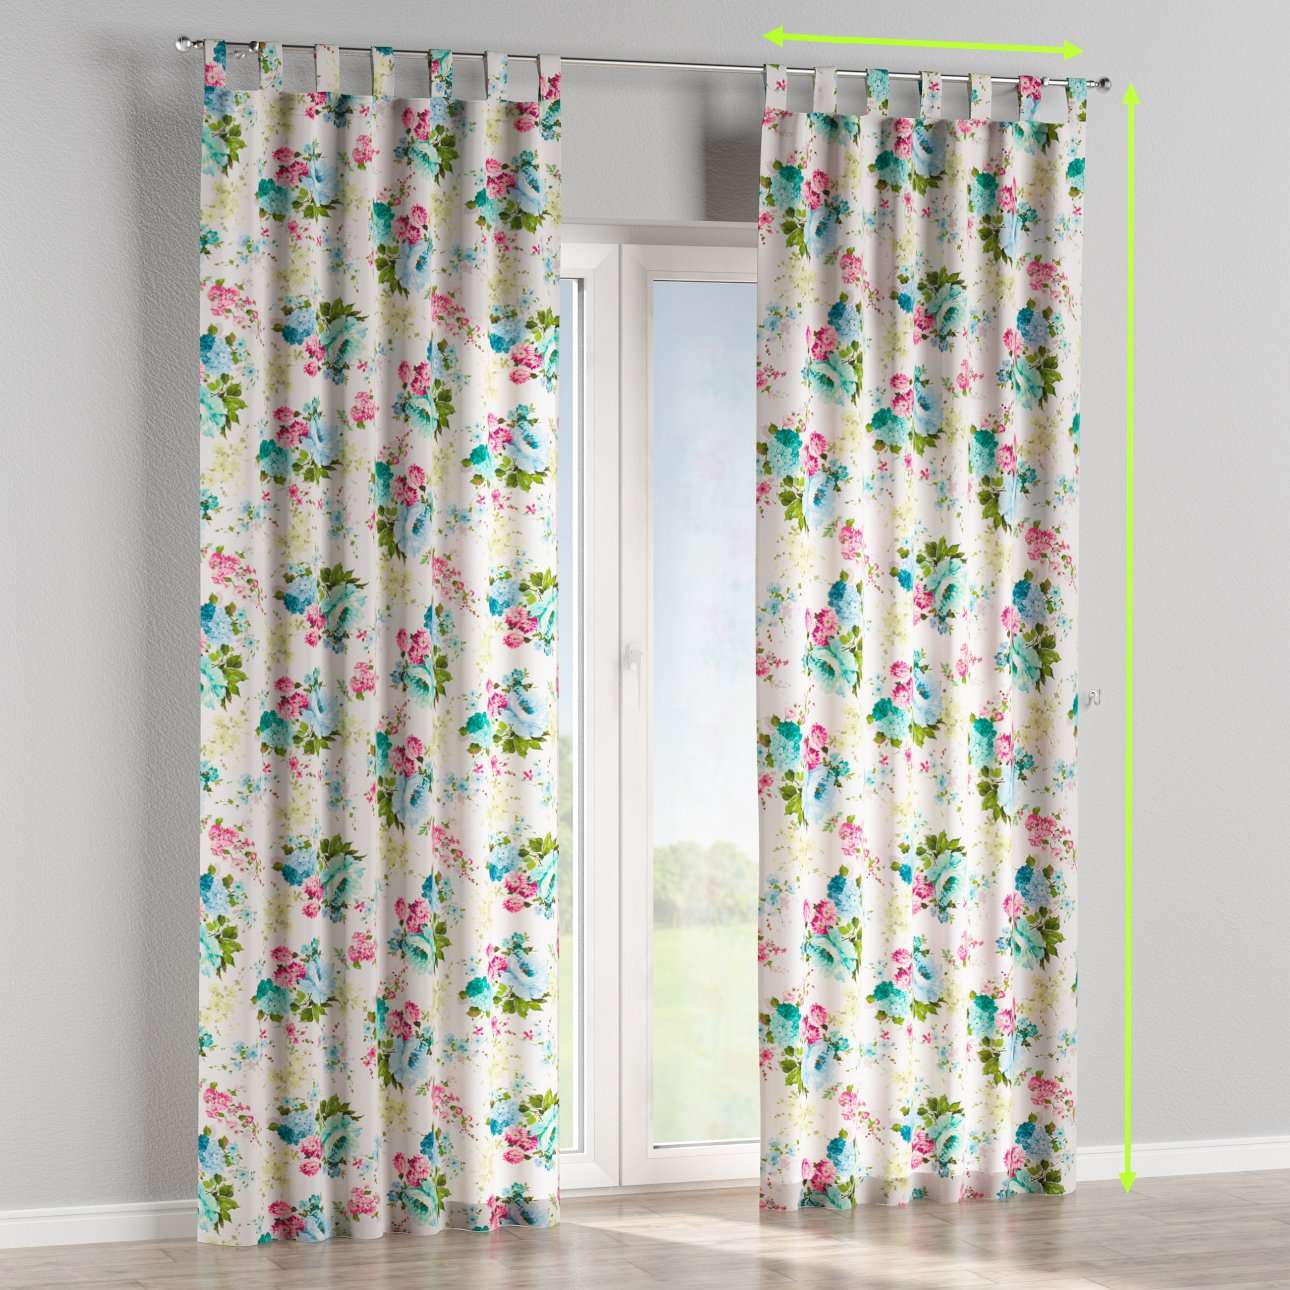 Tab top curtains in collection Monet, fabric: 140-02